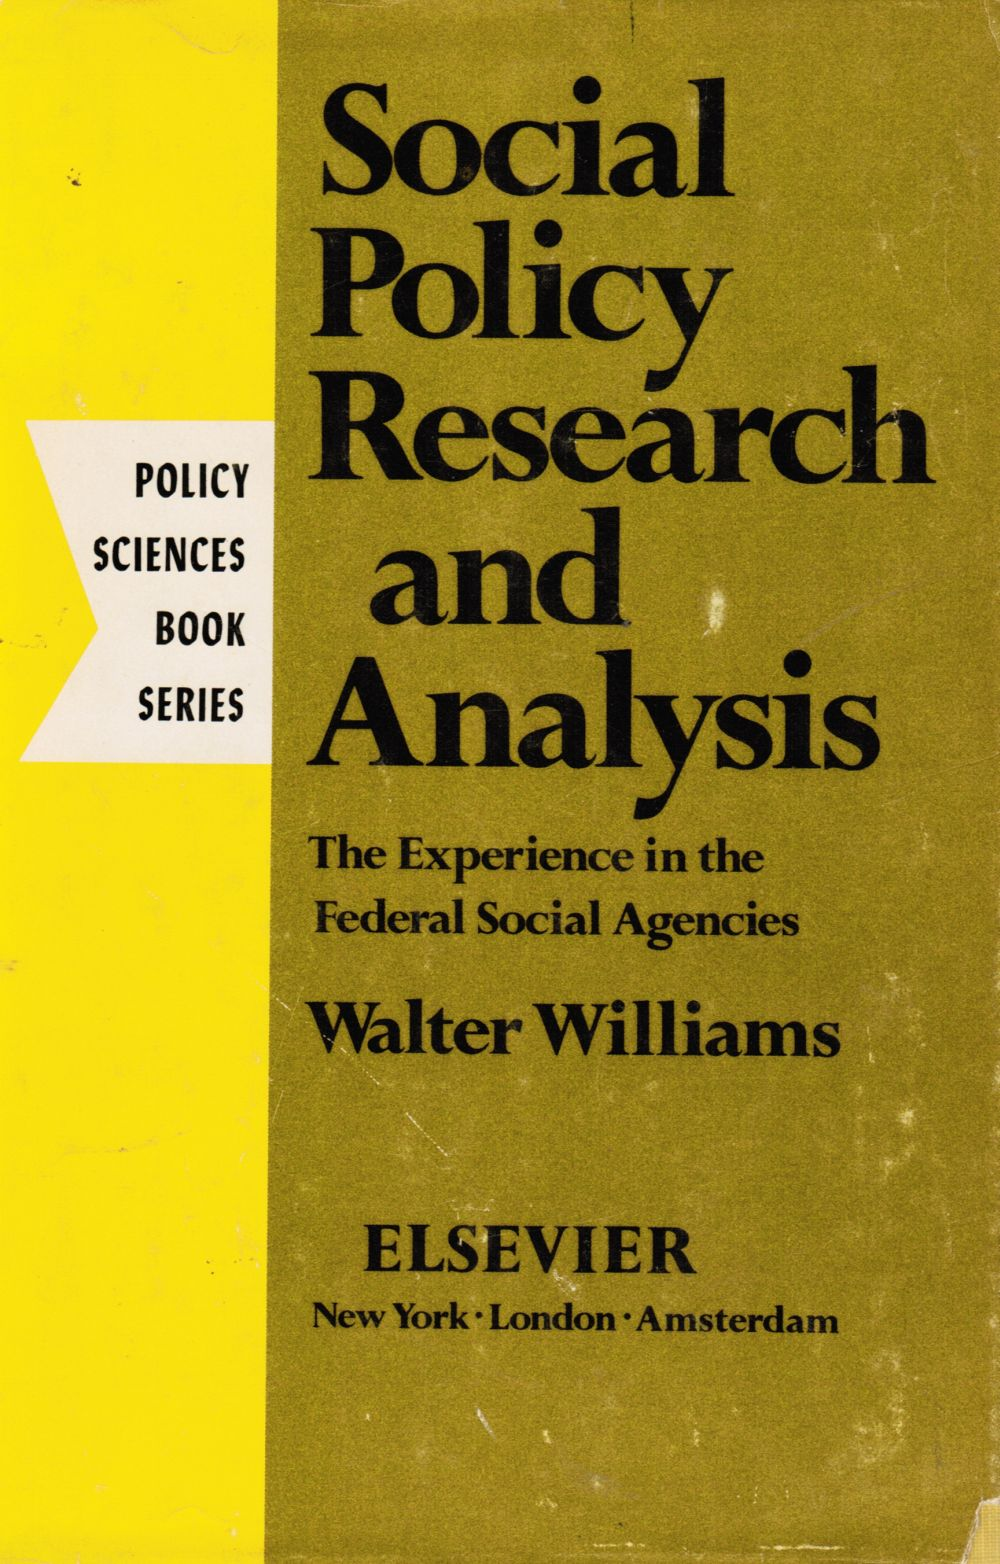 Image for Social Policy Research and Analysis: the Experience in the Federal Social Agencies